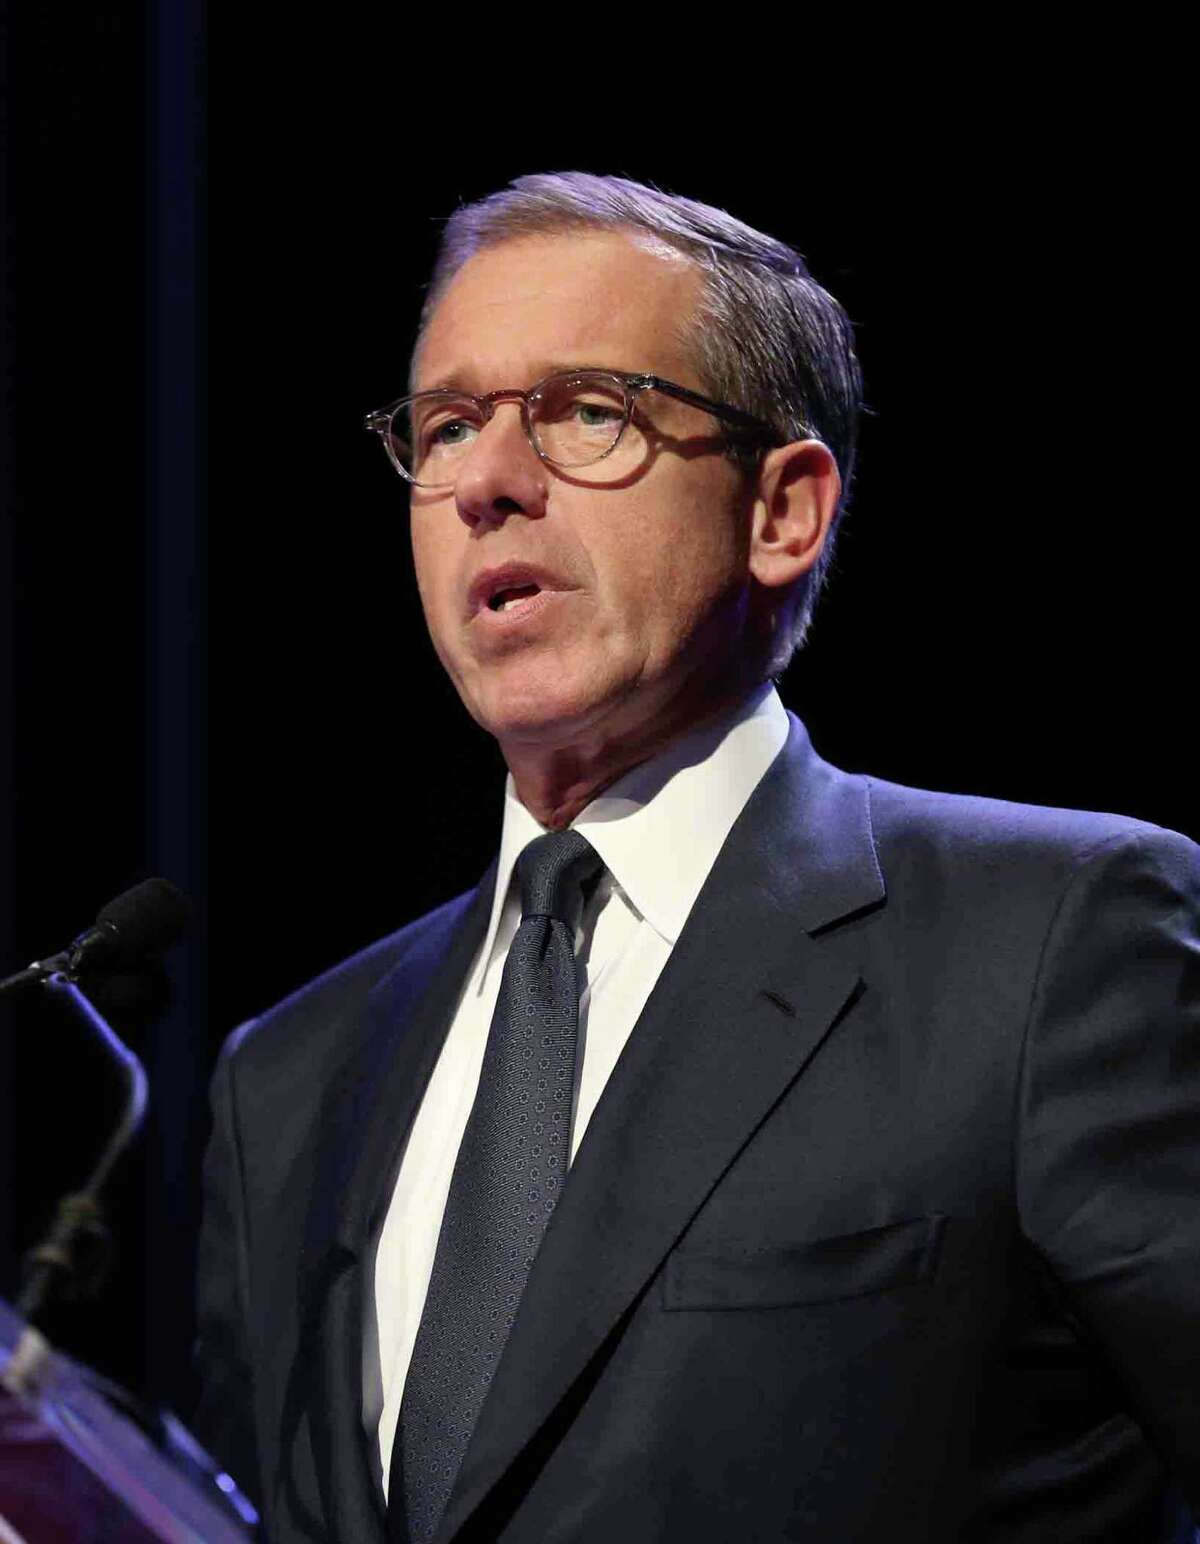 FILE - FEBRUARY 7, 2015: It was reported that NBC news anchorman Brian Williams is taking himself off the evening newscast temporarily as he is investigated over comments he made that misled the public February 7, 2015. NEW YORK, NY - MARCH 30: Emmy Award-winning anchor & managing editor of NBC Nightly News Brian Williams speaks at the 57th Annual New York Emmy awards at Marriott Marquis Times Square on March 30, 2014 in New York City.